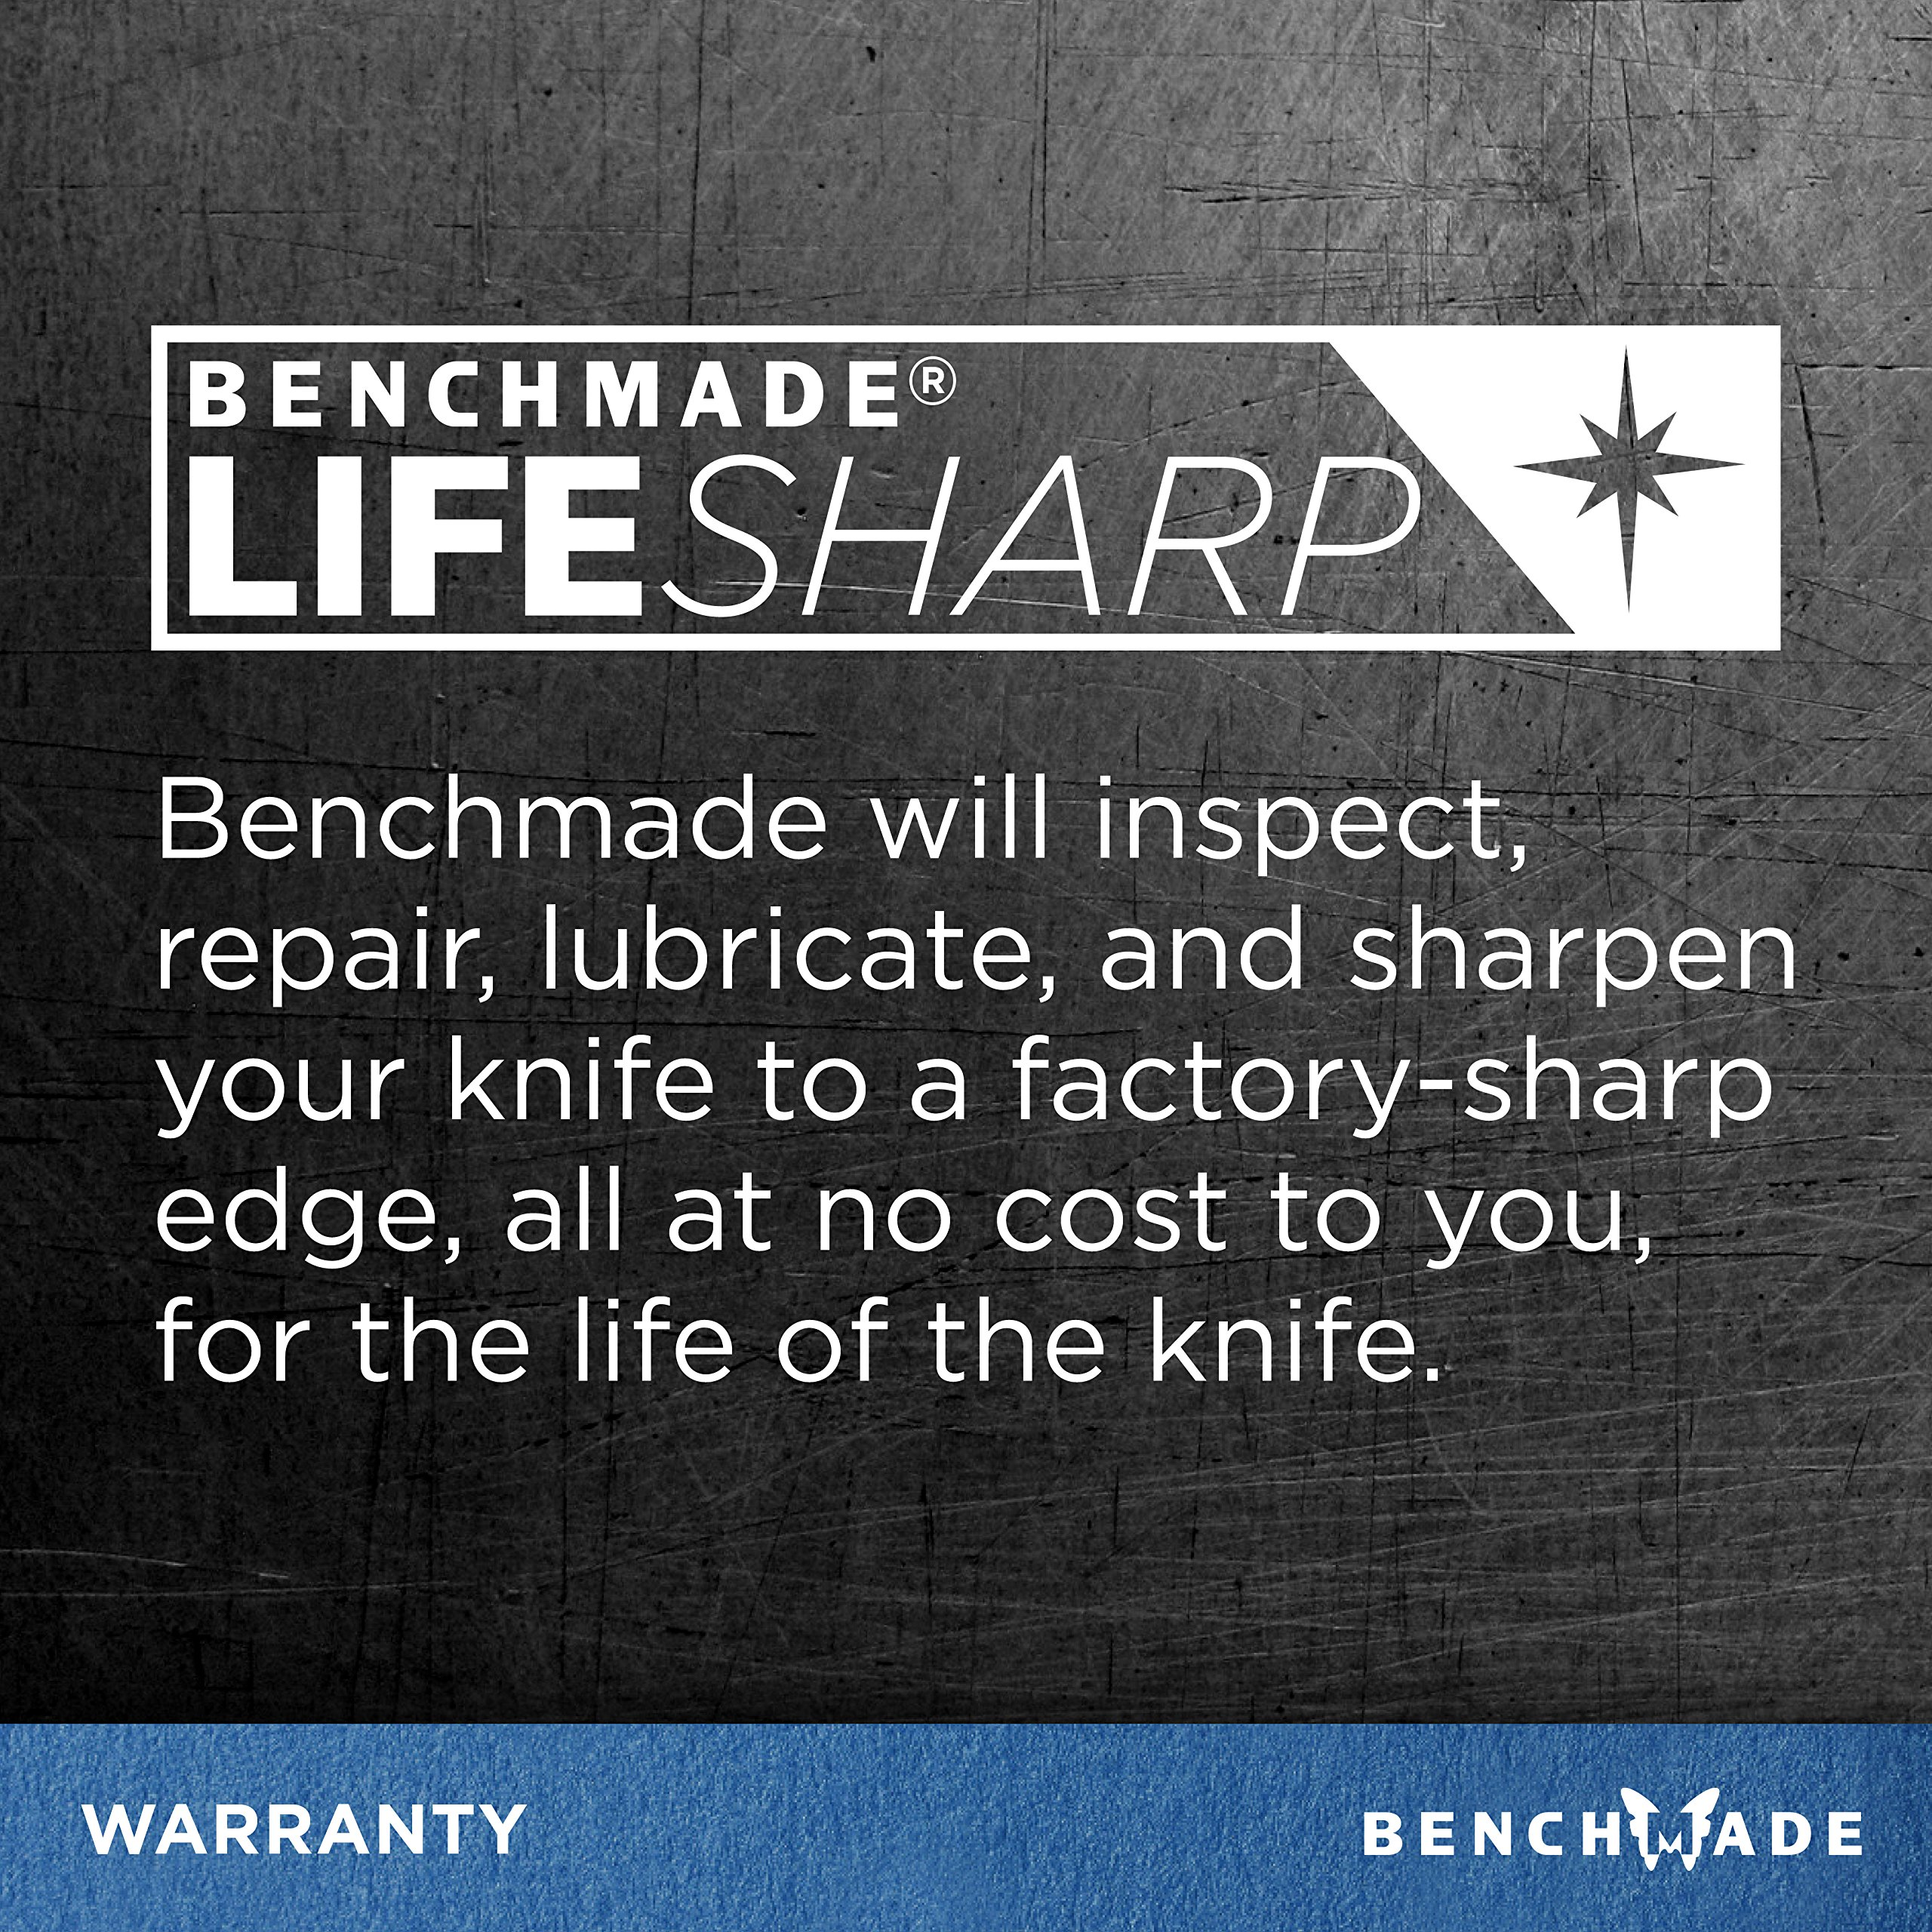 Benchmade - Tactical Triage 917 Manual Open Folding Knife with Glass Breaker and Rescue Hook Made in USA, Drop-Point Blade, Plain Edge, Satin Finish, Black Handle by Benchmade (Image #6)